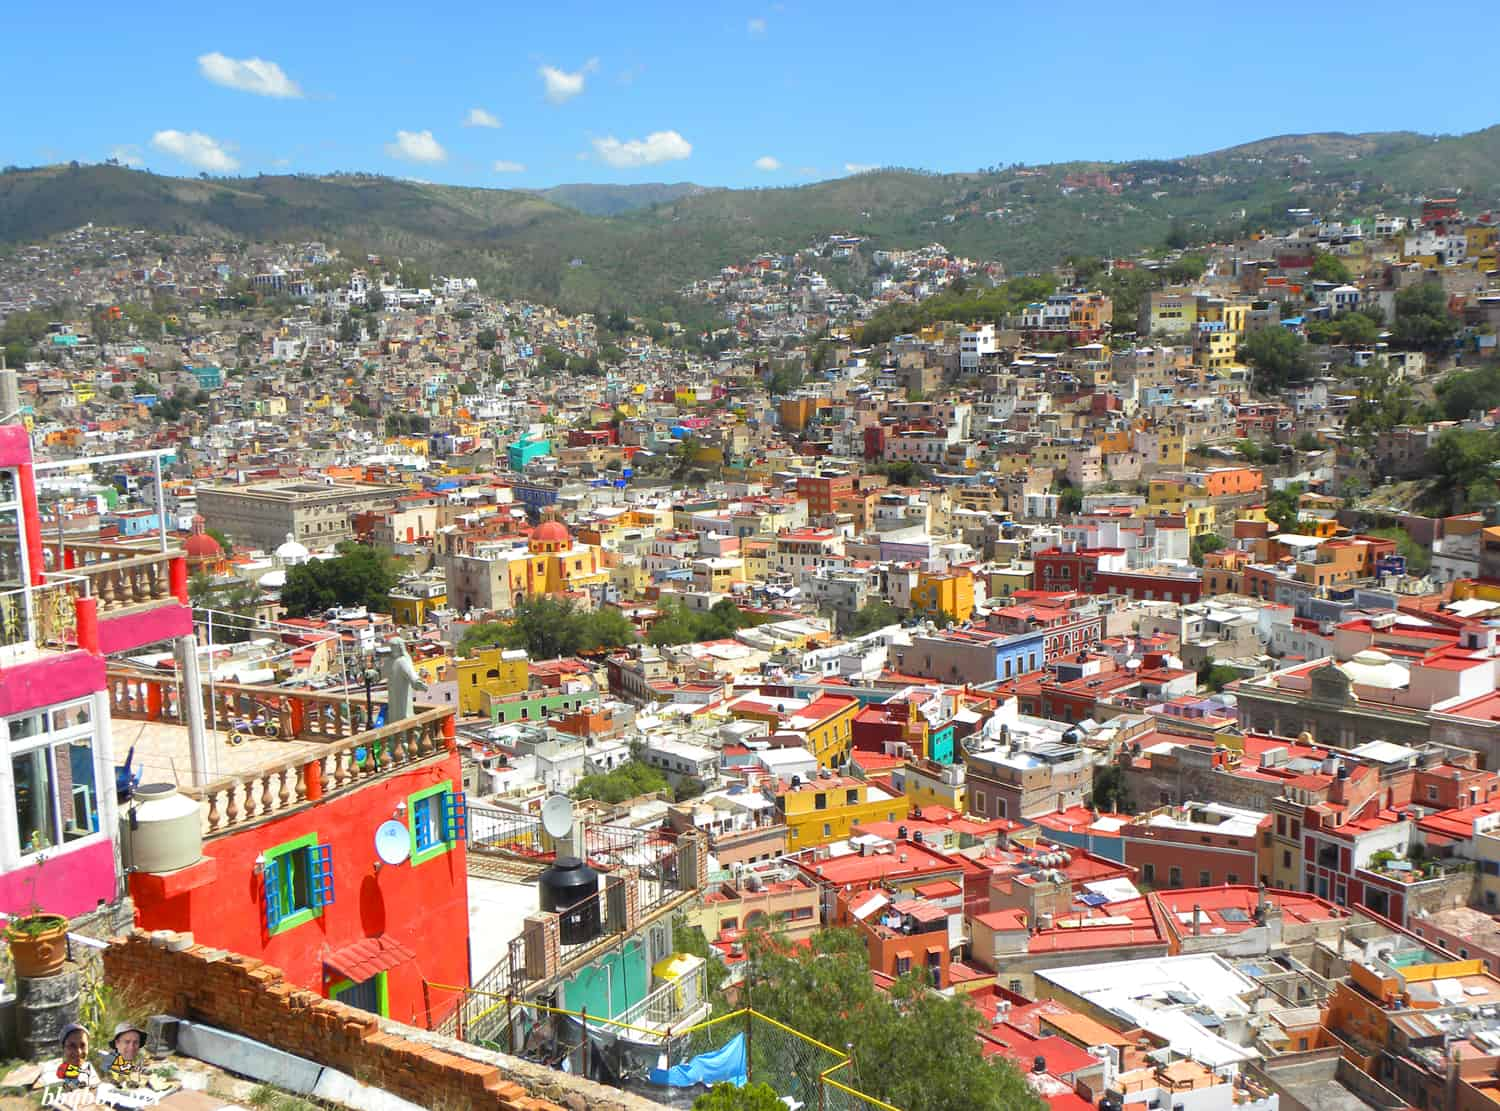 views from San Miguel hill over Guanajuato, Mexico